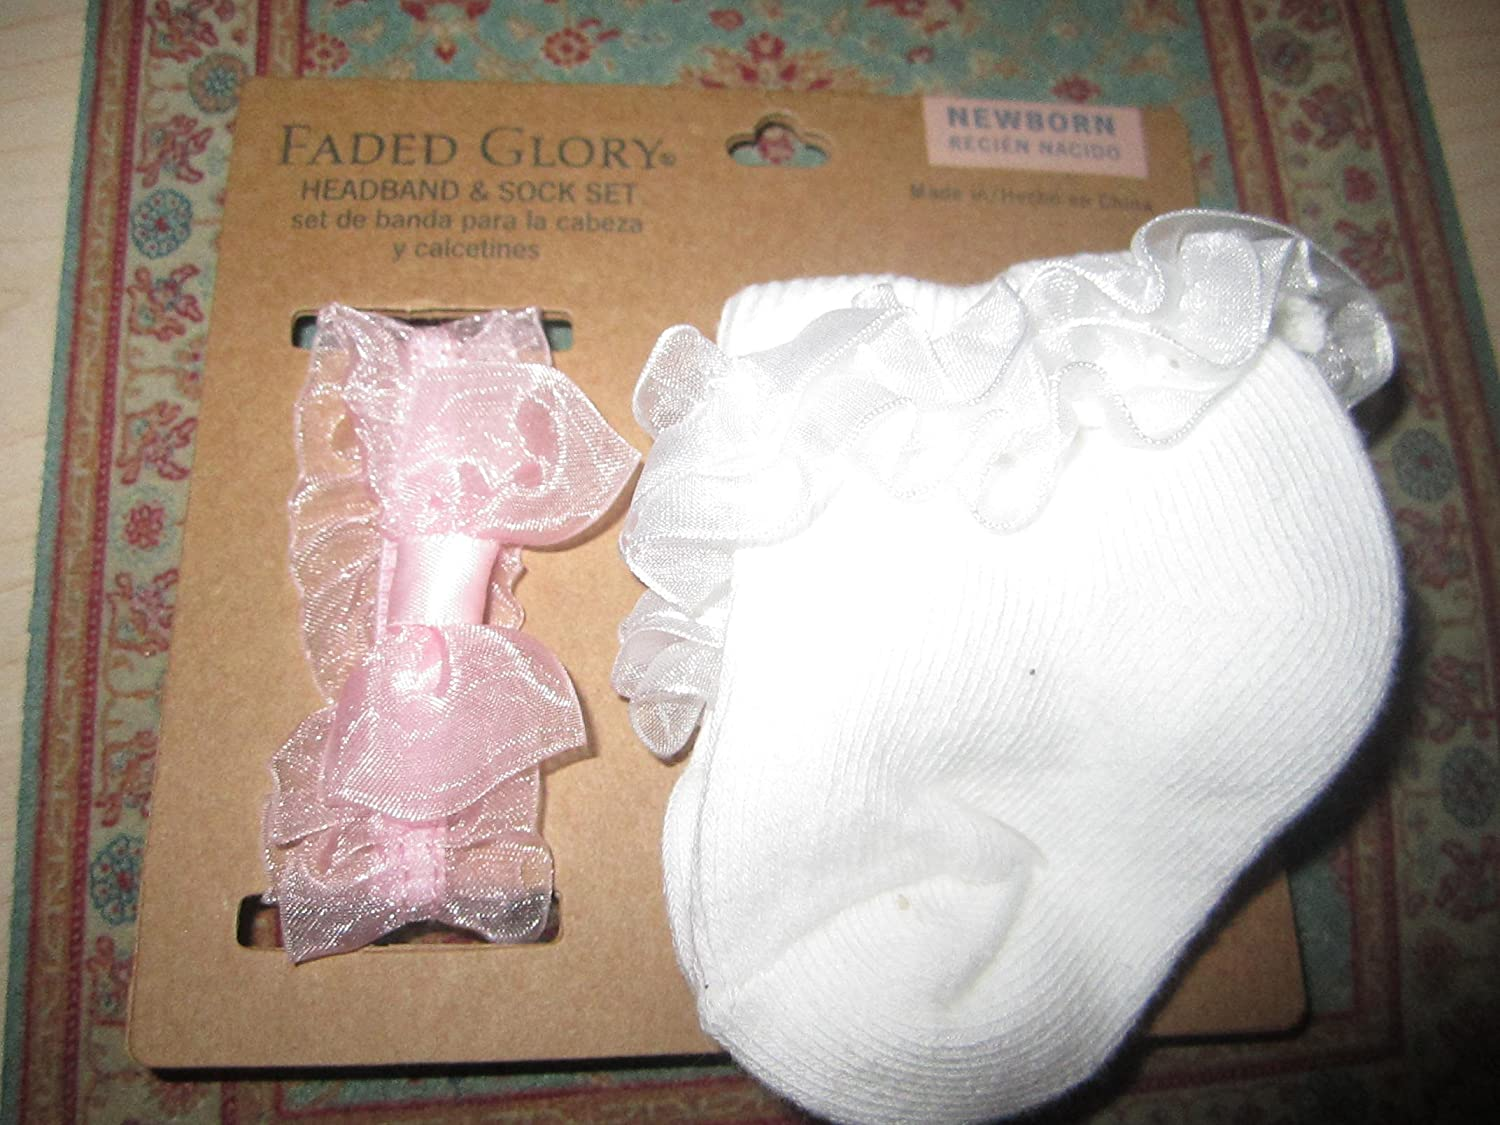 Amazon.com : Faded Glory Headband & Sock Set (Newborn) : Baby ...